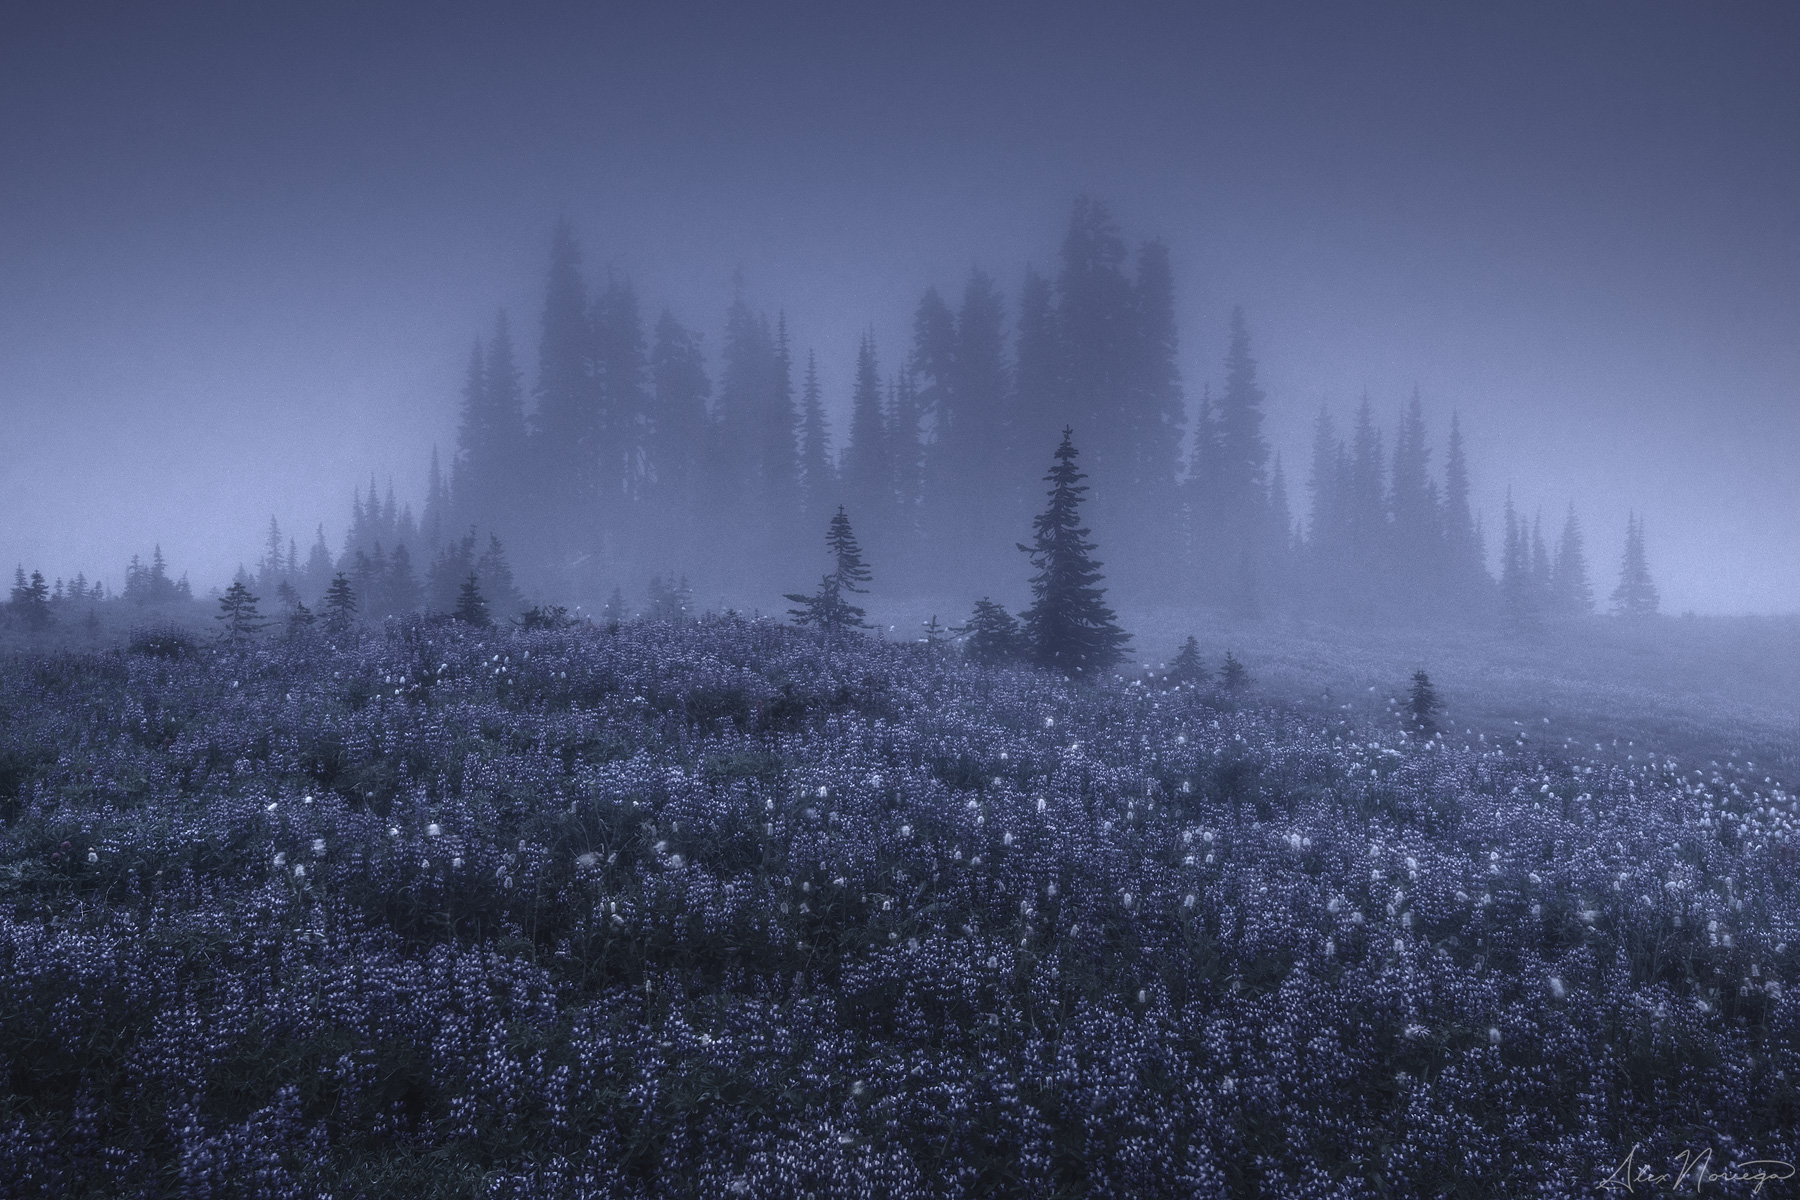 THE BLIND FOREST